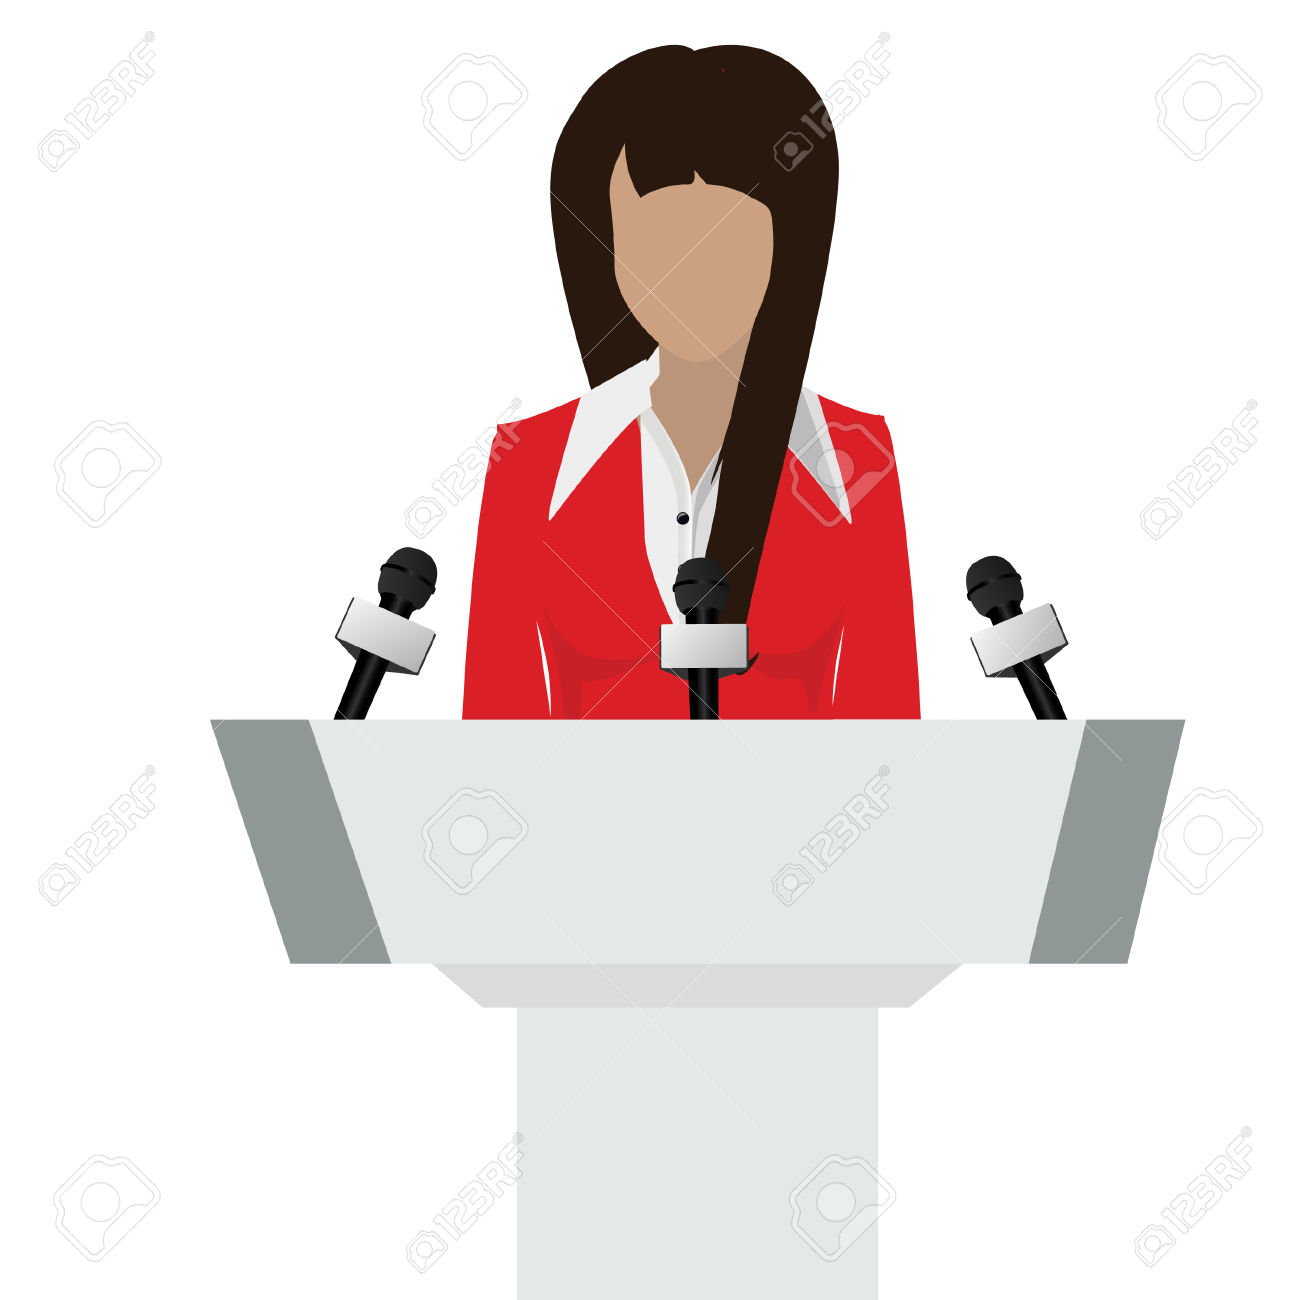 Person speaker clipart.